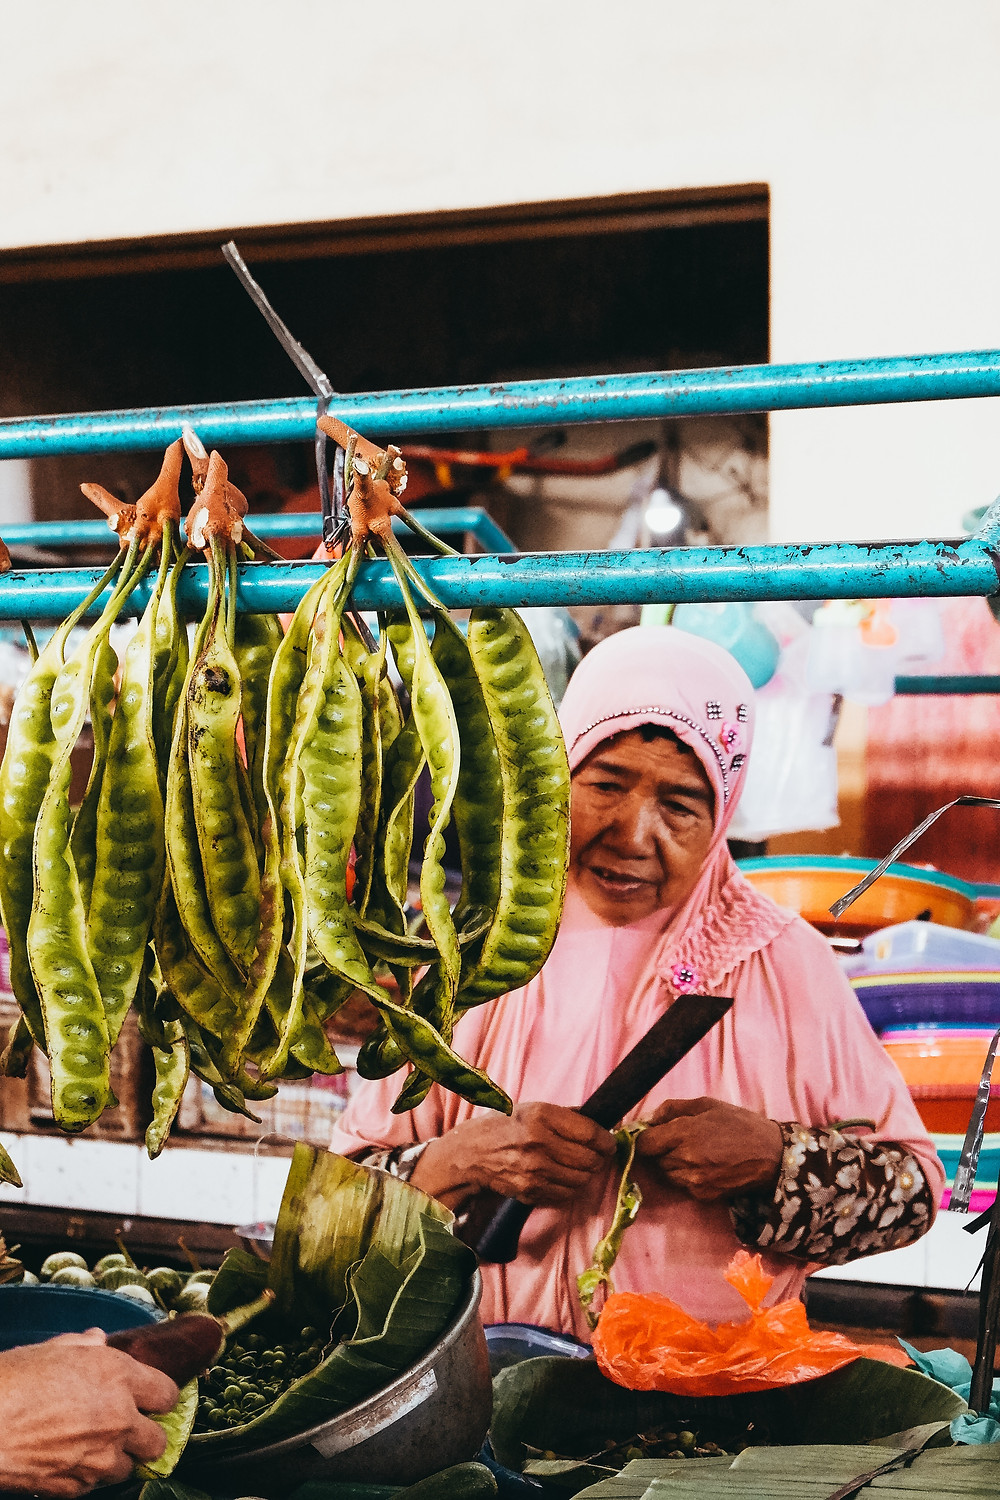 Peteh (pete or petai in Indonesian) beans in strings at a food market in Indonesia